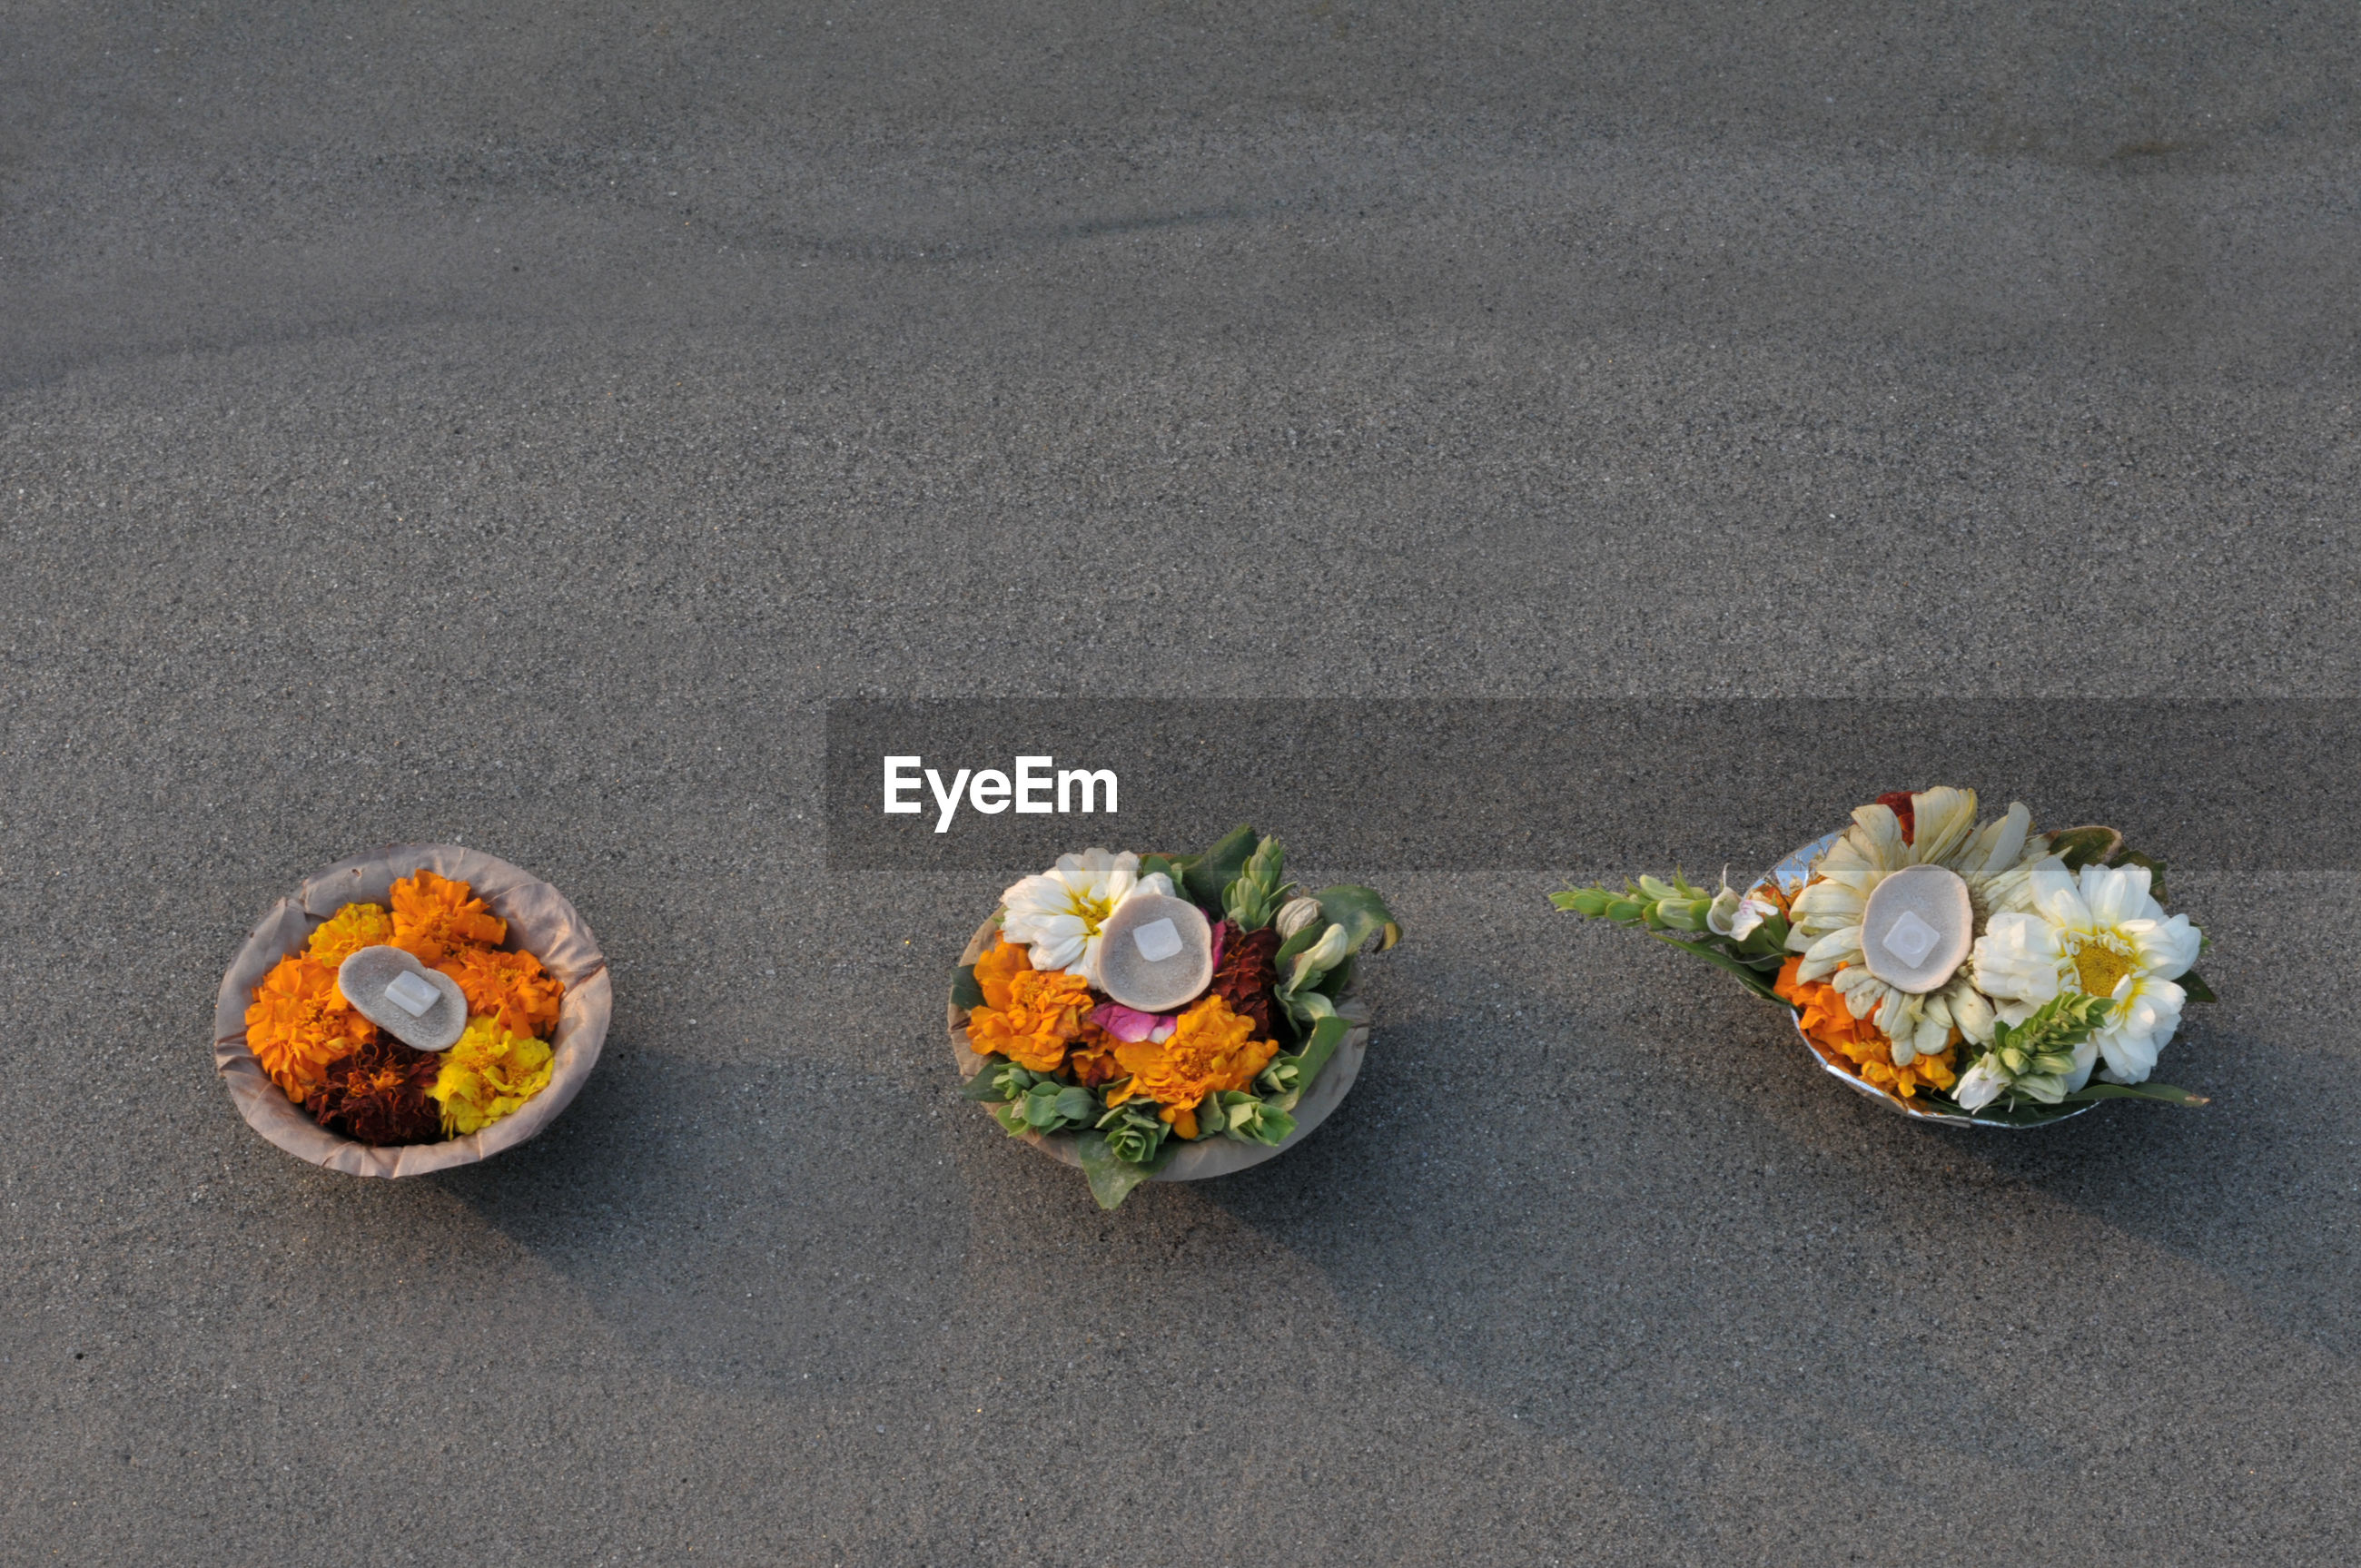 High angle view of flowers and leaves in containers on sand